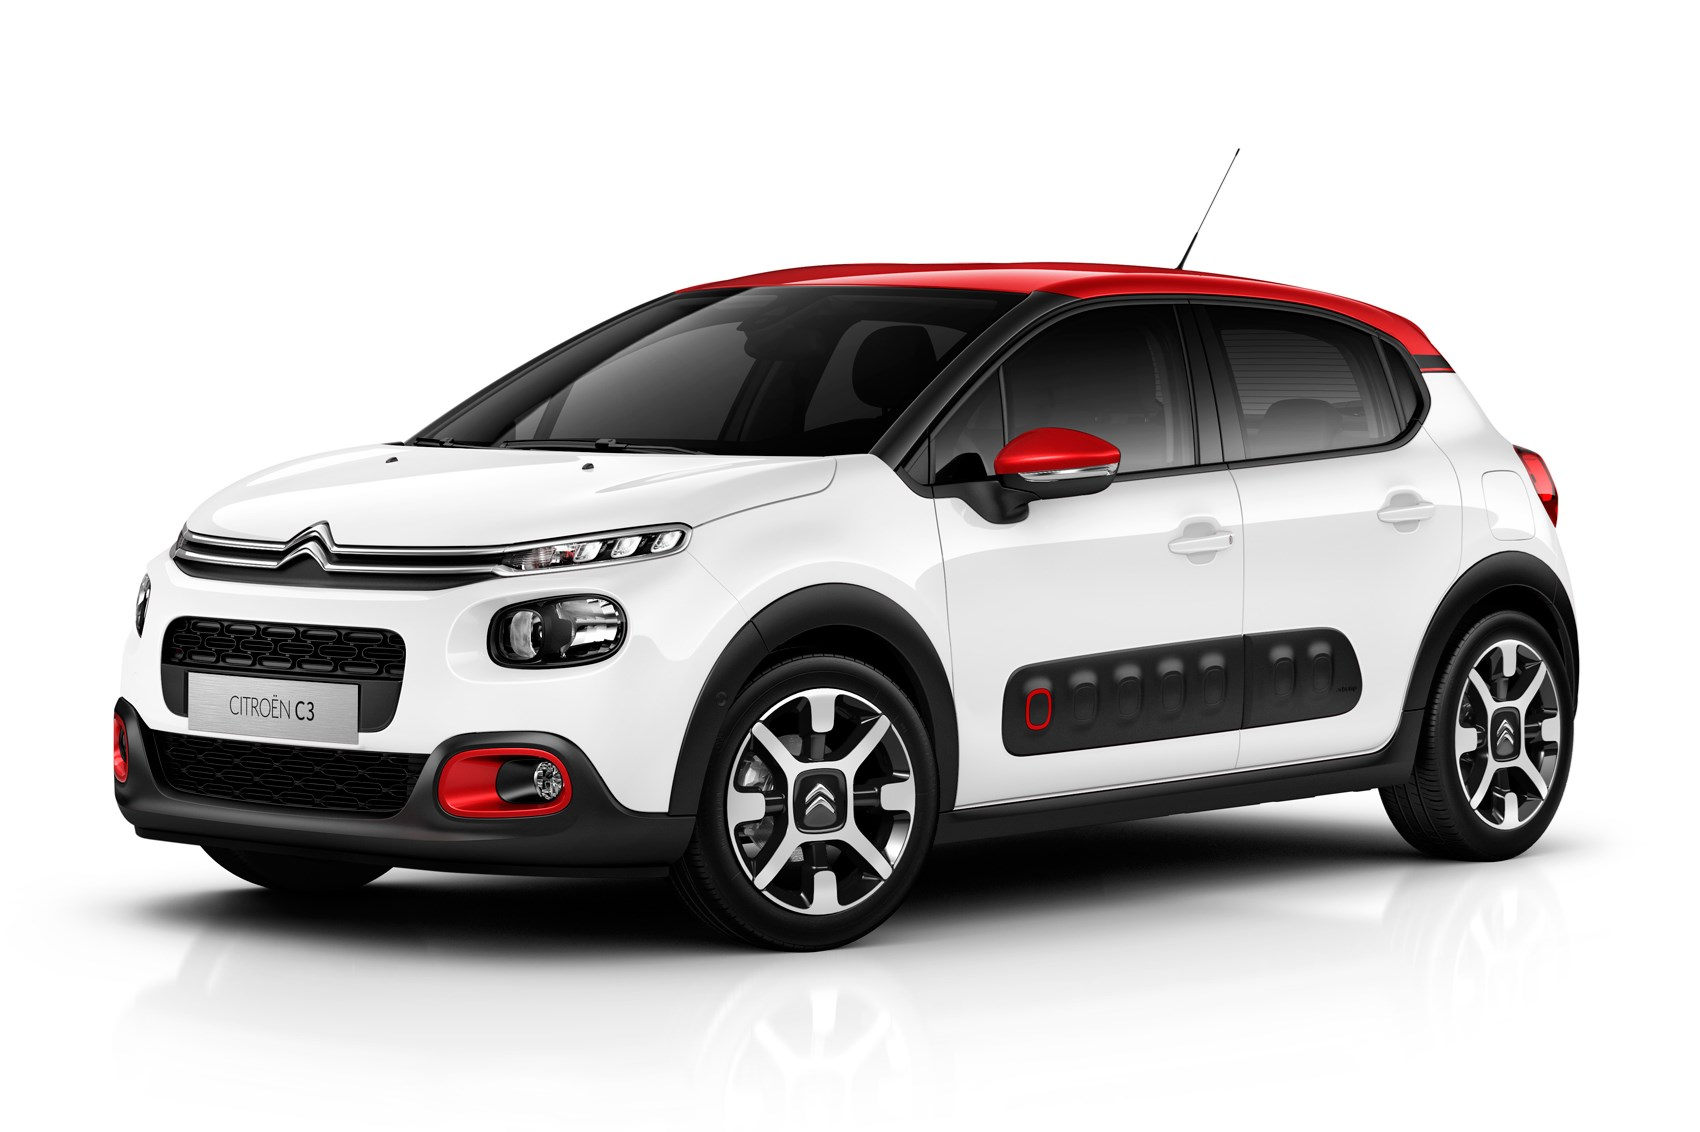 citroen c3 5dr hat 1 6 bluehdi 100 flair st sp contract hire and leasing. Black Bedroom Furniture Sets. Home Design Ideas